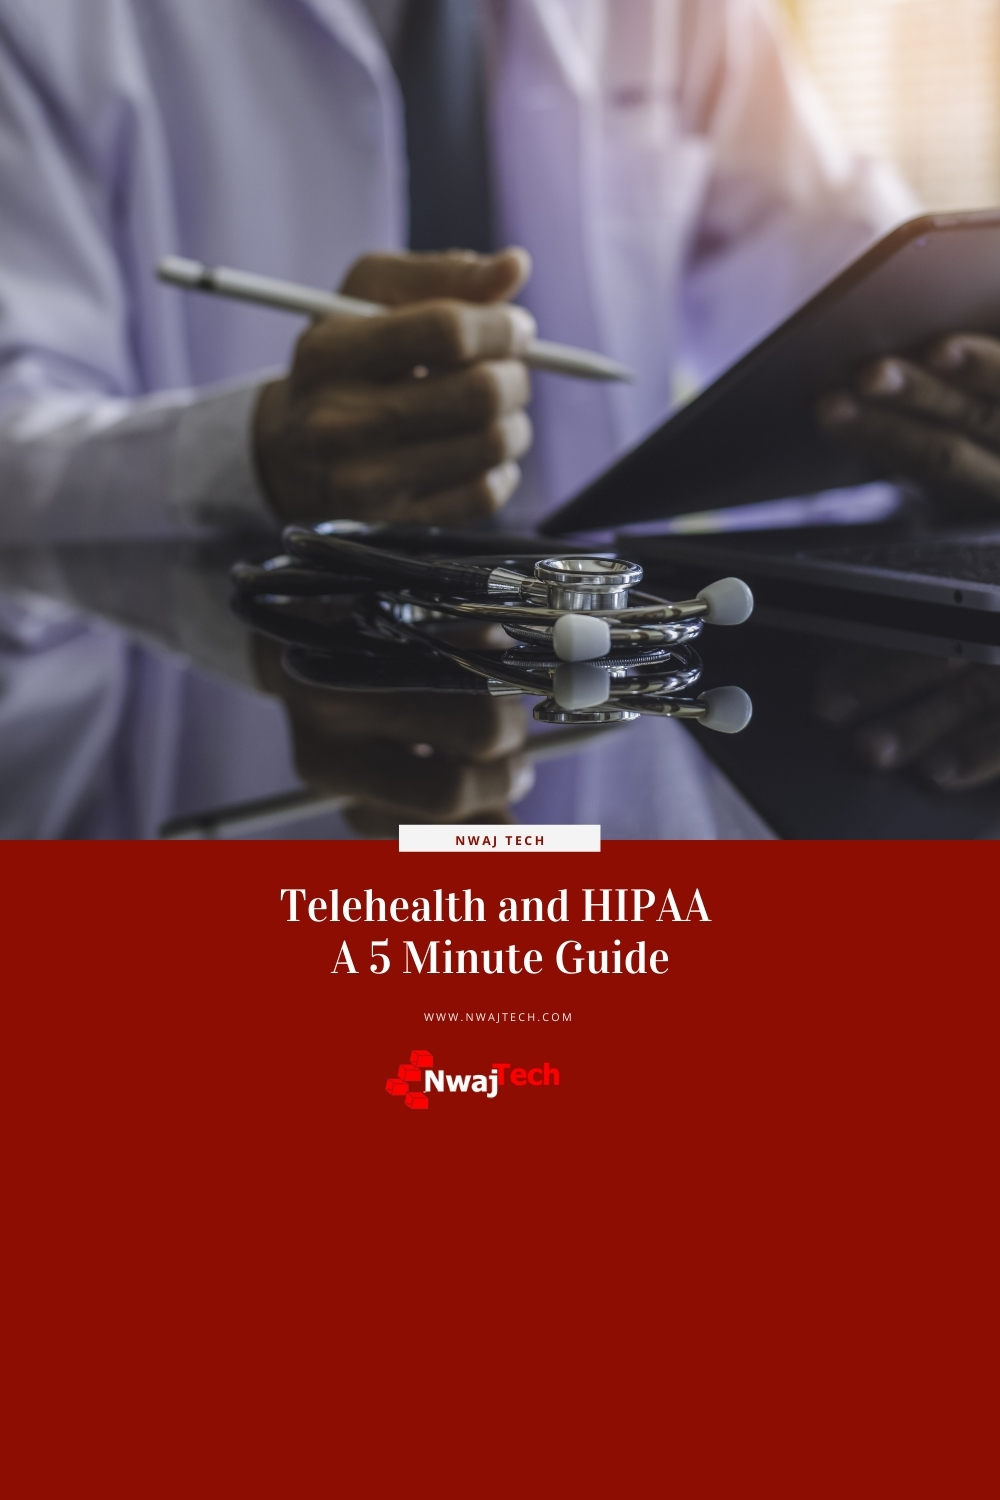 telehealth and hipaa a 5 minute guide PIN